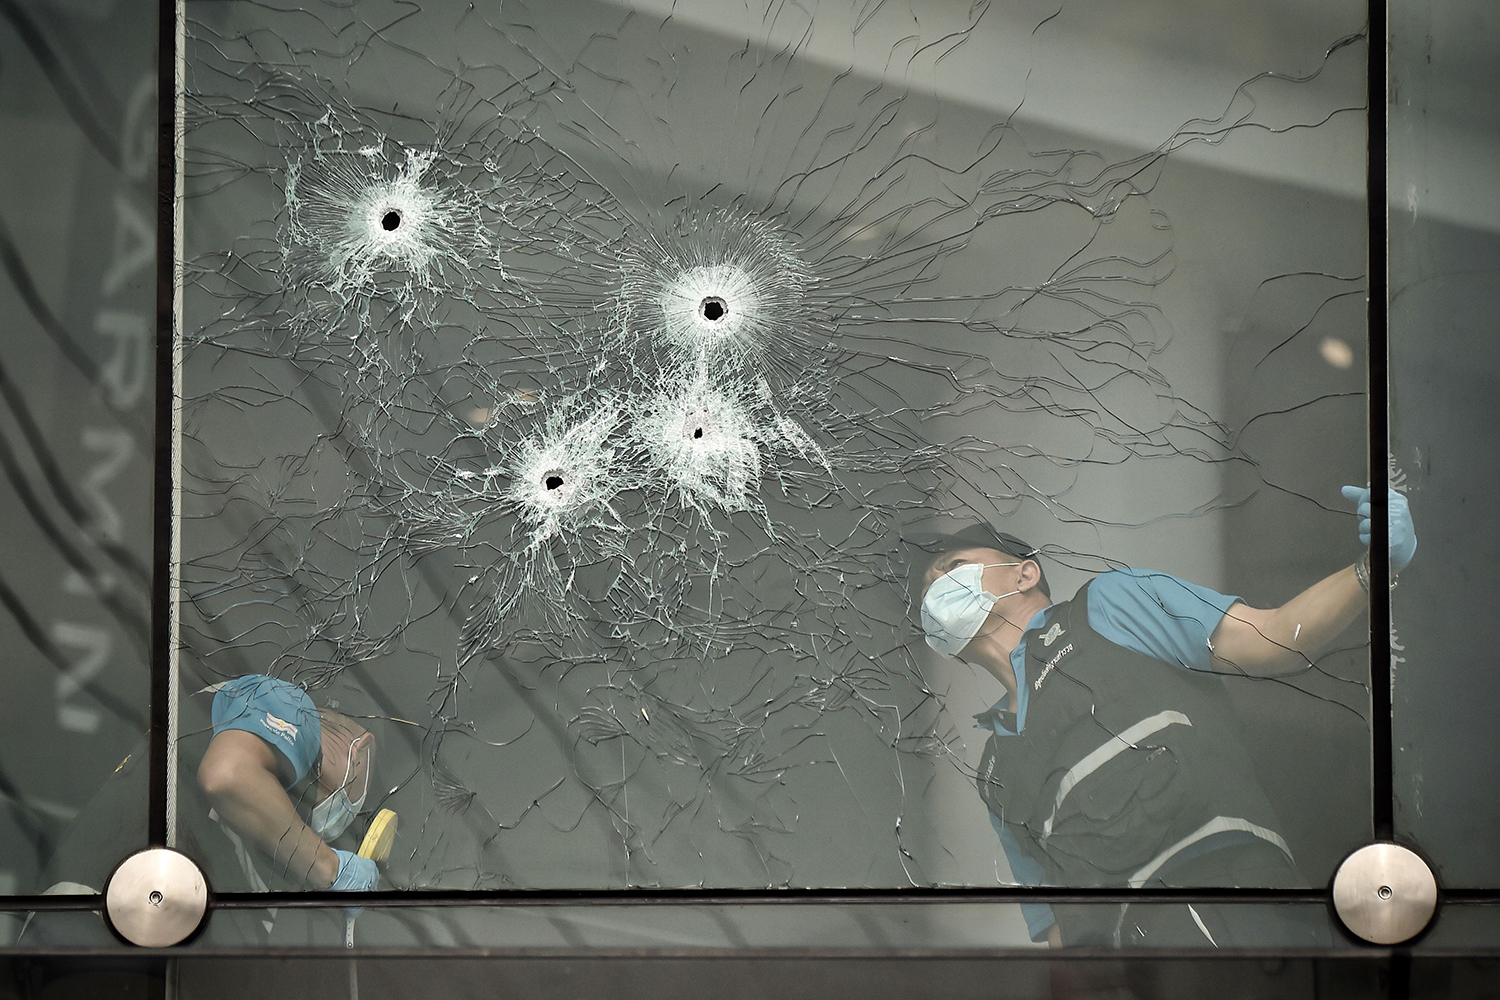 Forensics police inspect bullet holes inside the Terminal 21 shopping mall where a mass shooting took place in the Thai northeastern city of Nakhon Ratchasima on Feb. 10. A Thai soldier killed 29 people and holed up in a mall overnight before being shot dead by commandos. LILLIAN SUWANRUMPHA/AFP via Getty Images